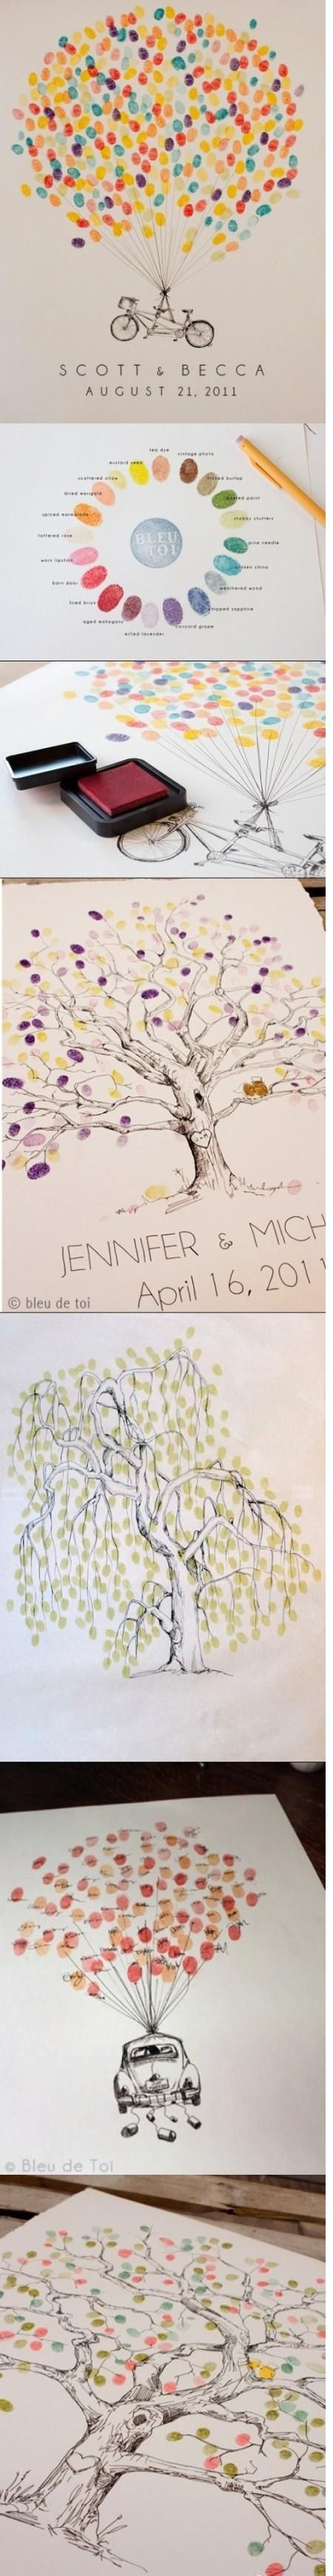 """various ideas for guestbook """"signed""""  with thumbprints"""